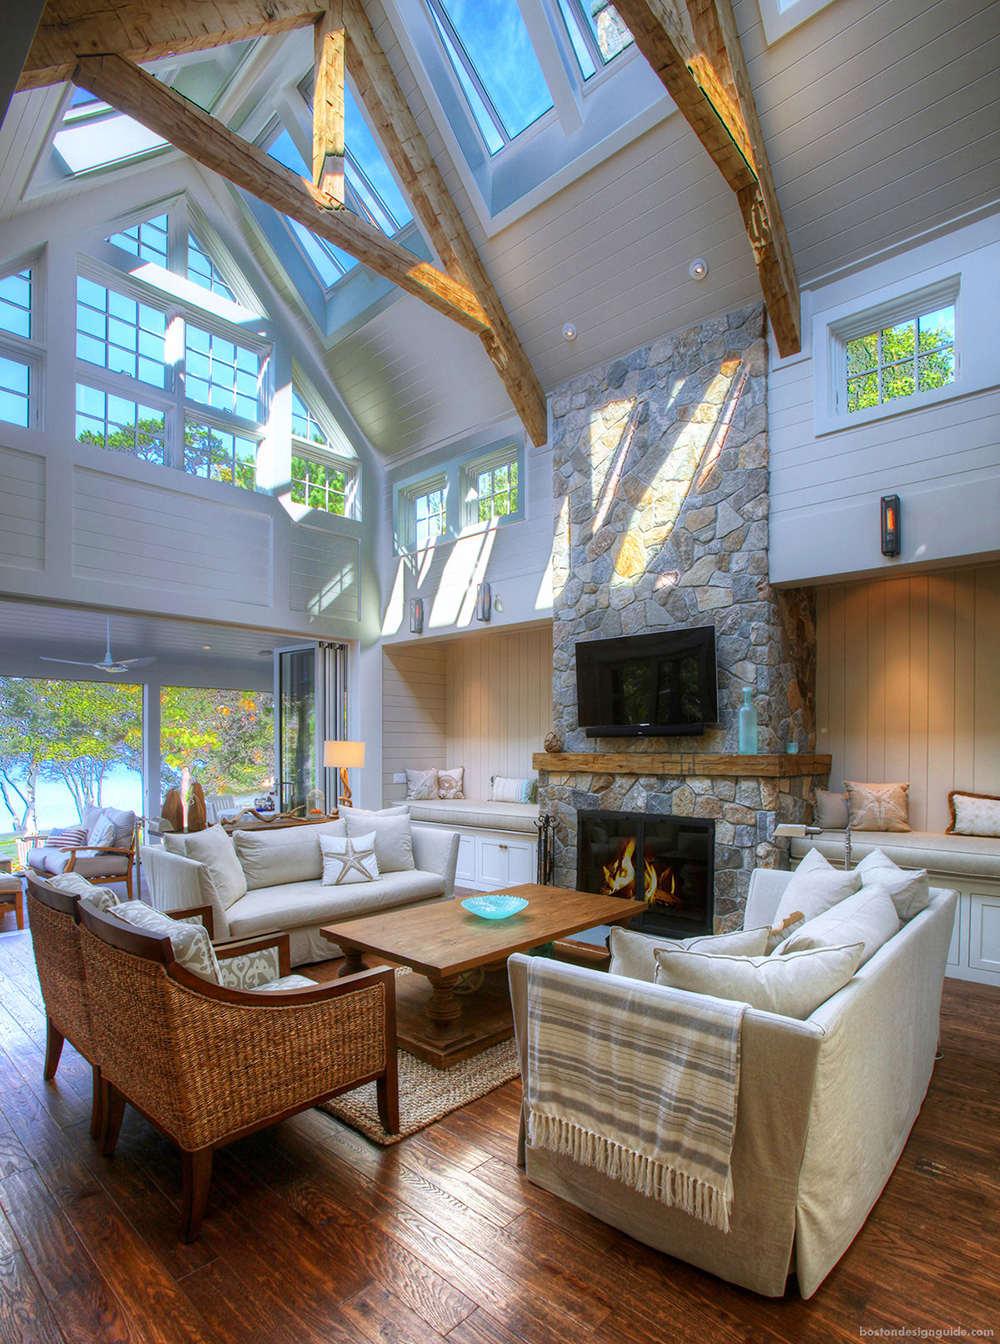 professional tips on renovating your home